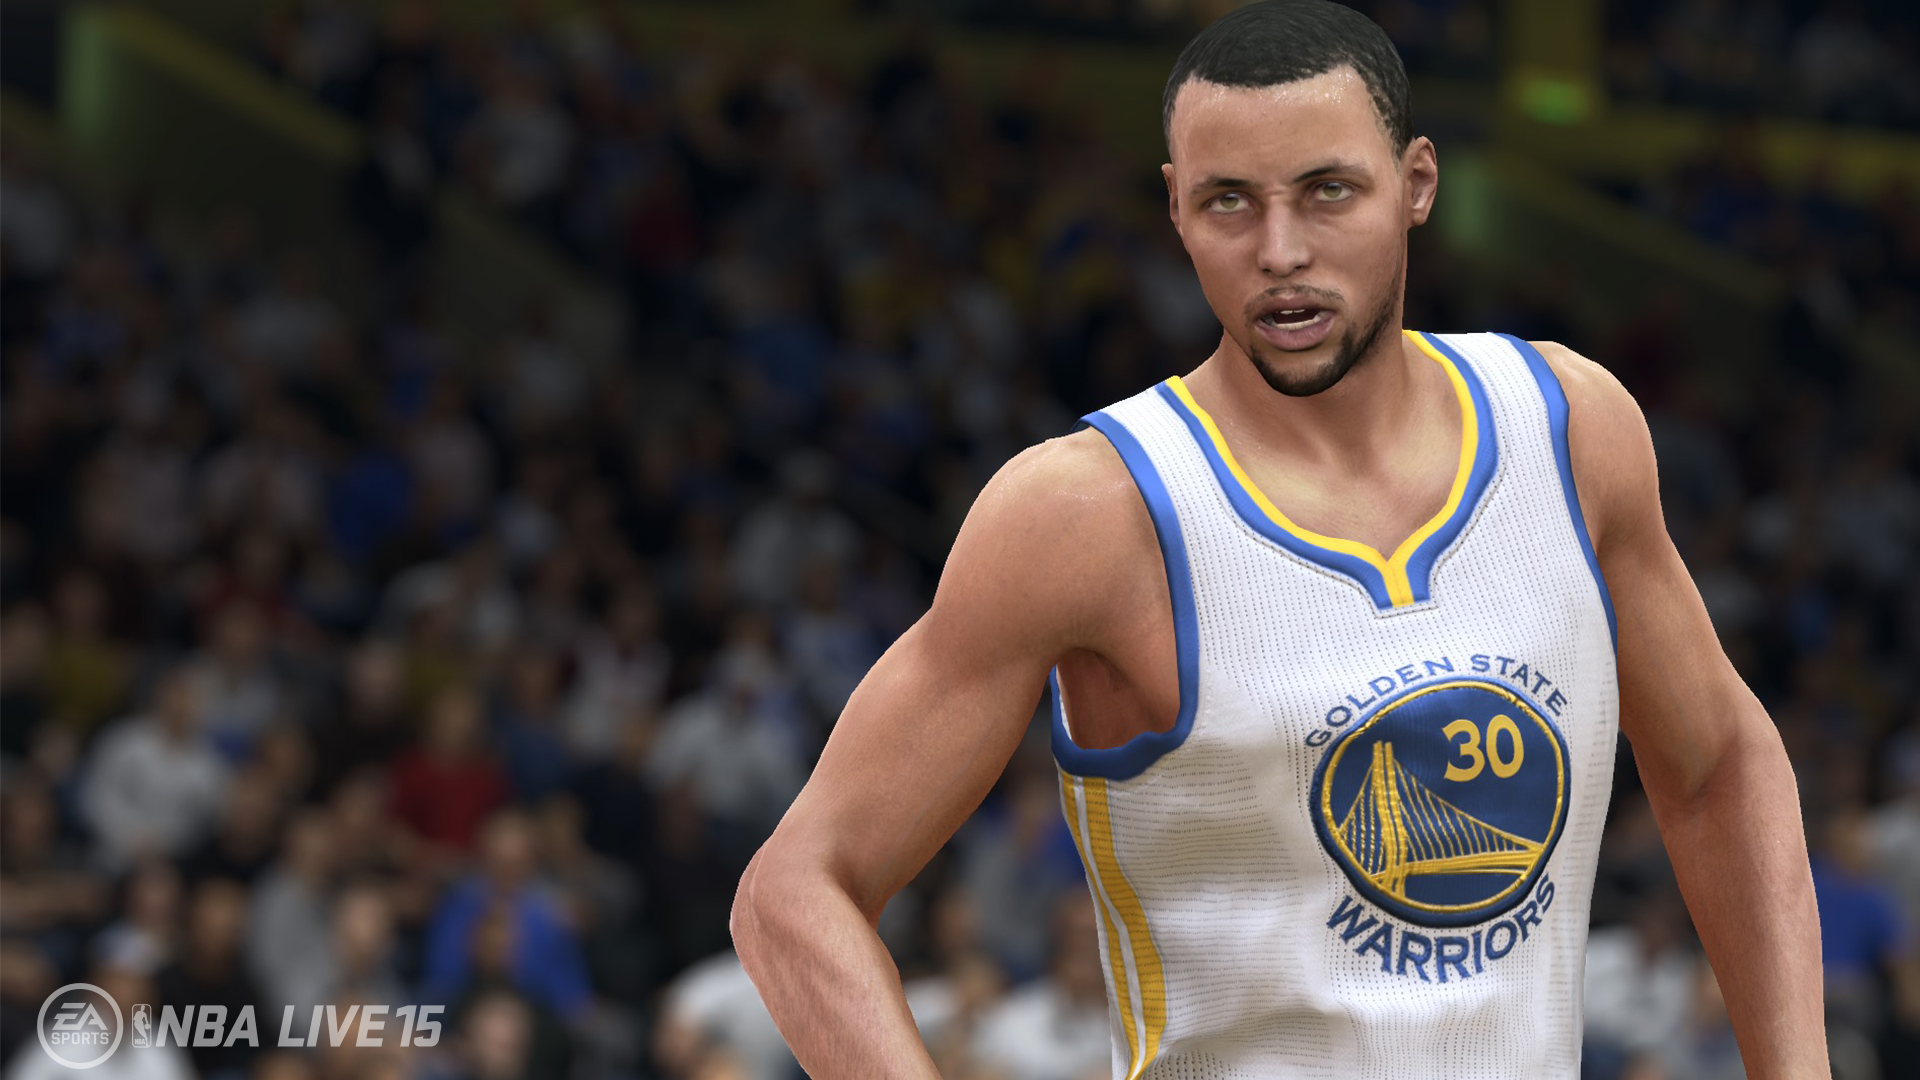 NBA Live 15 Preview - Back to the Hardcourt